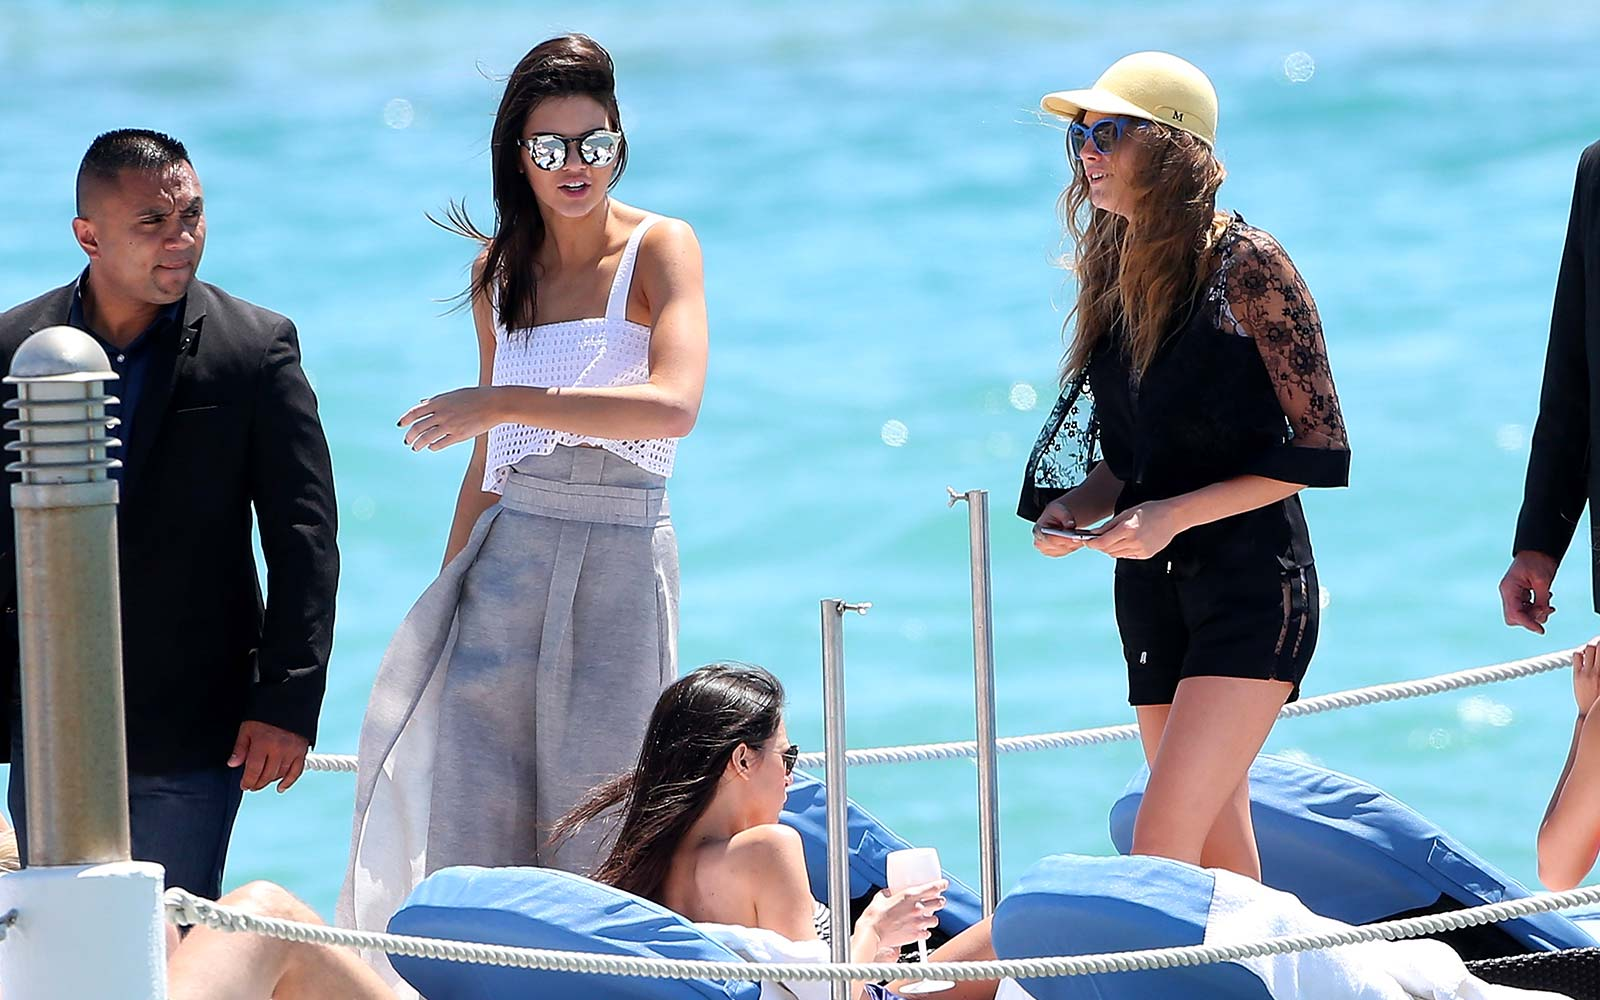 Kendall Jenner and Cara Delevingne at the Martinez Hotel Beach Cannes, France Summer Vacation Holiday